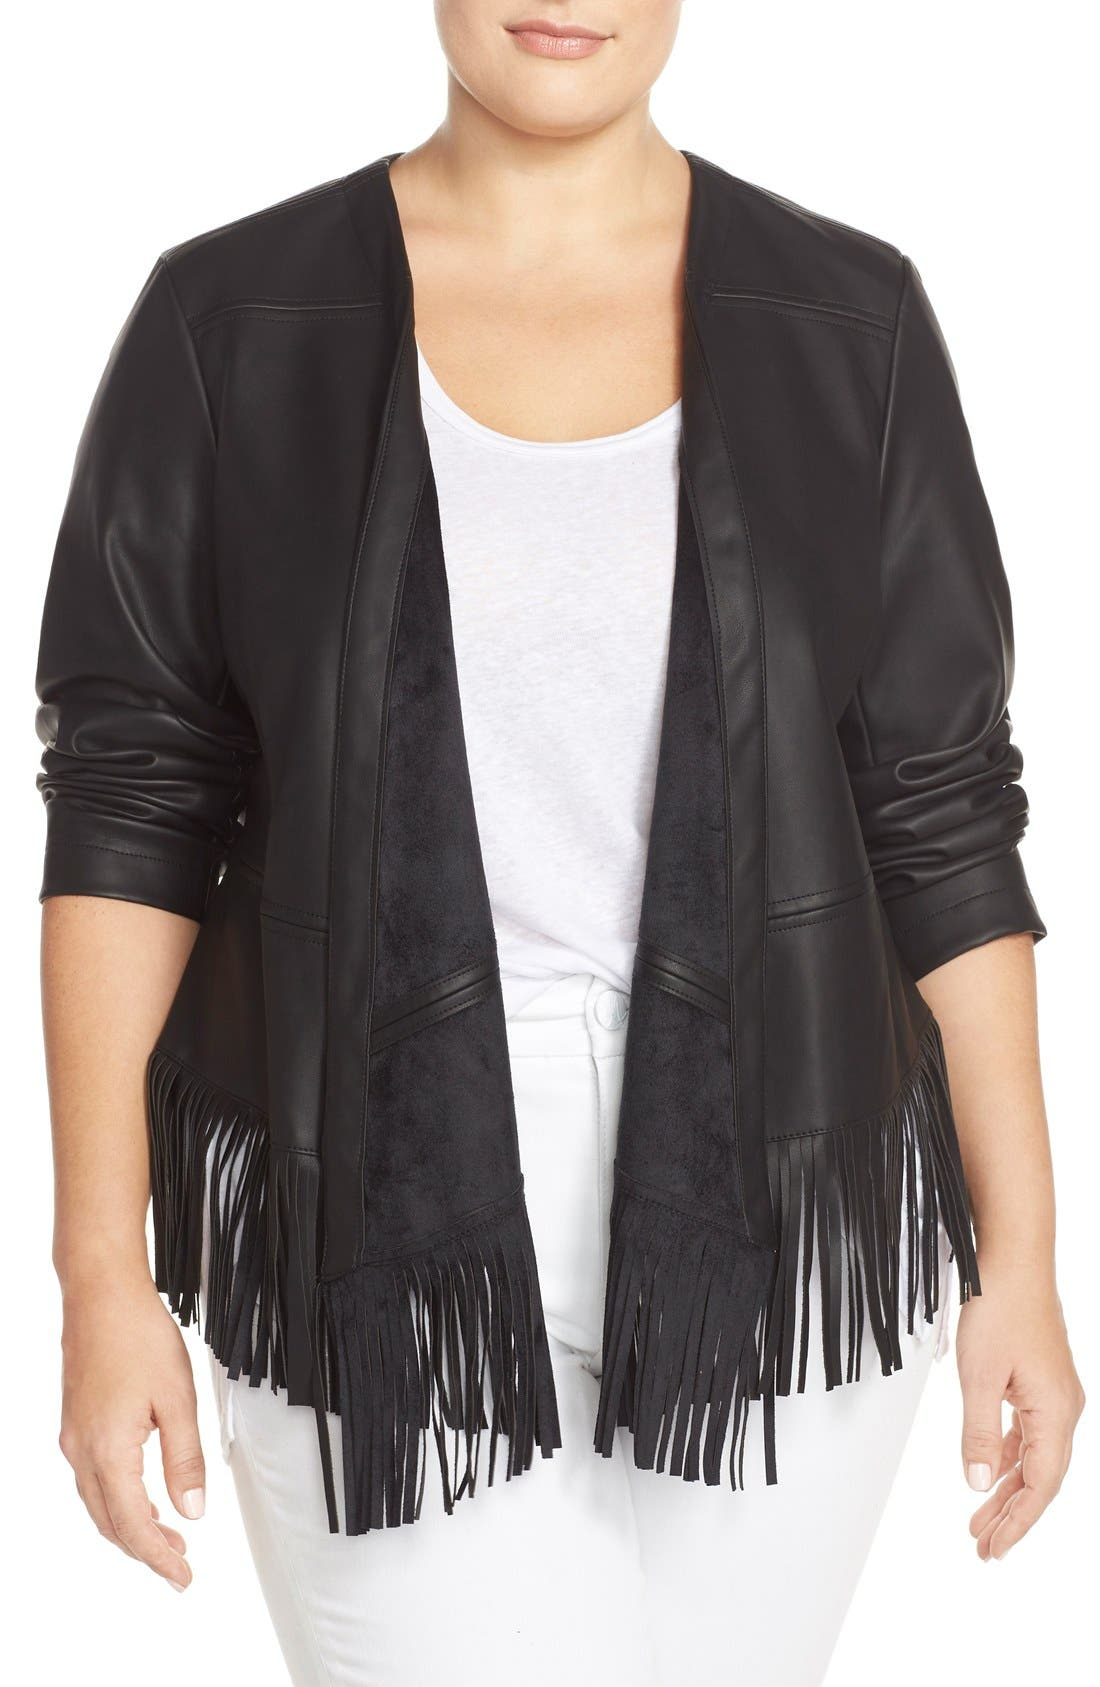 Main Image - Bernardo Fringe Faux Leather Jacket (Plus Size)